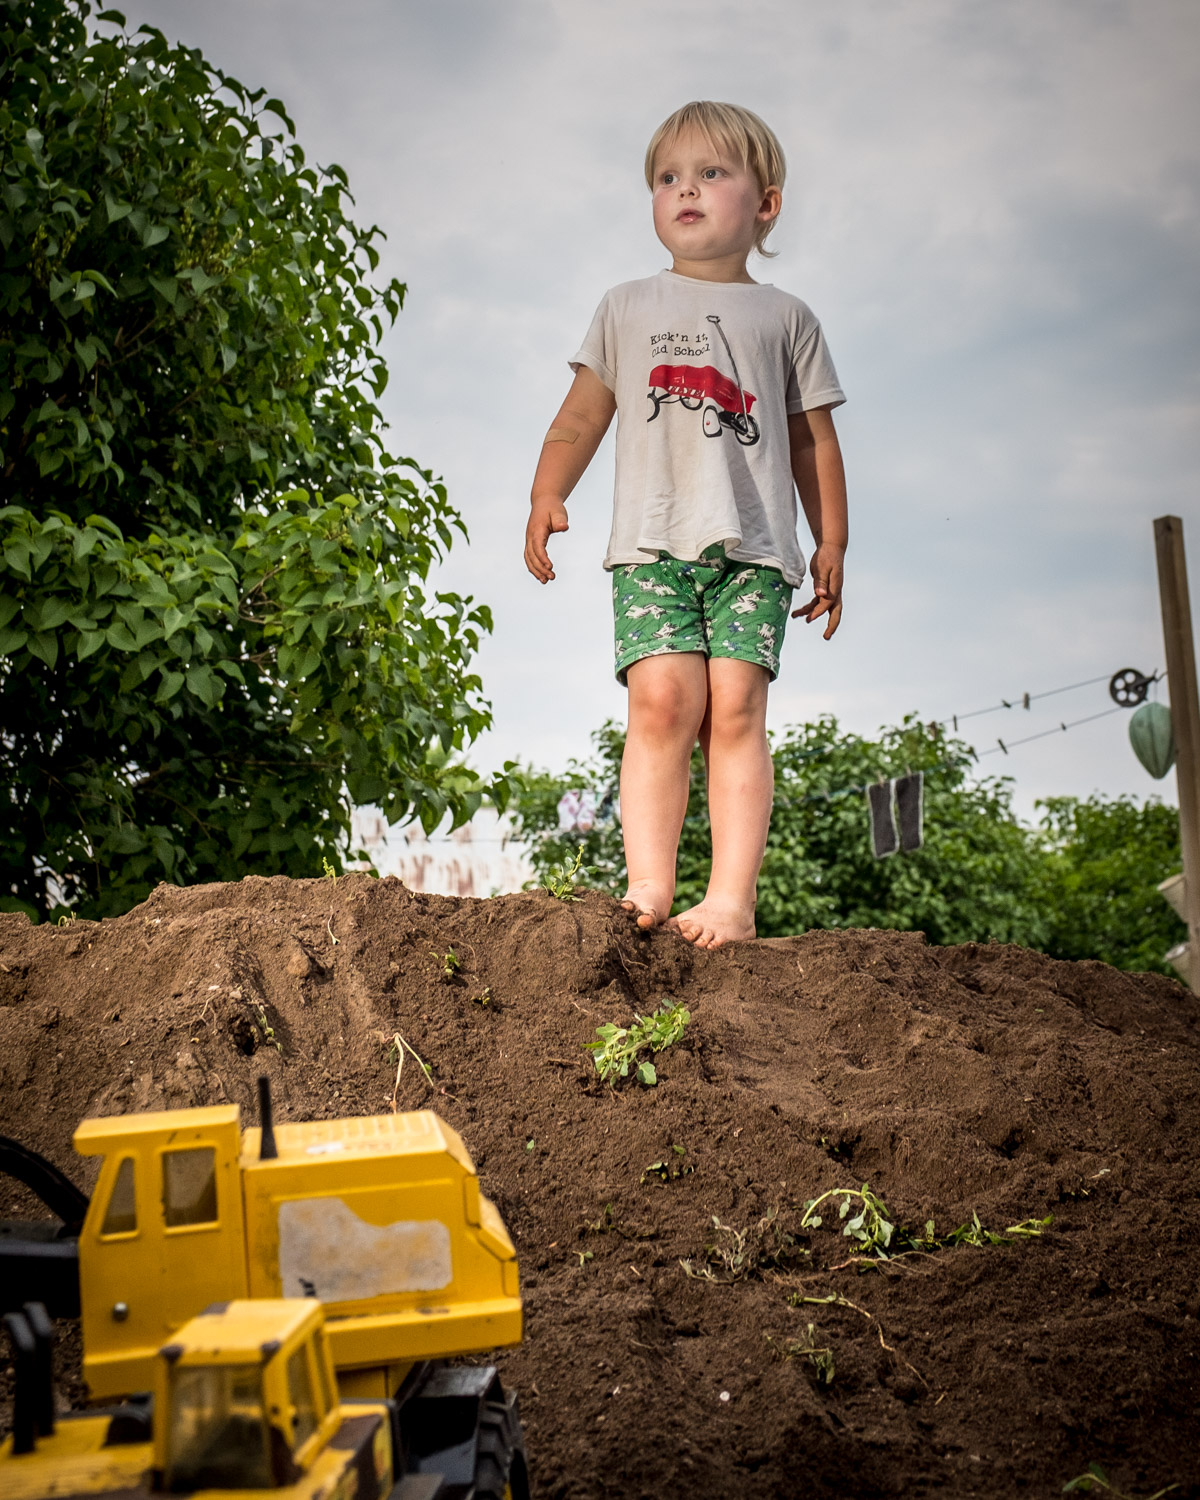 Image: Moment: posedComposition: low angleLight: soft, side lightClimbing a mound of dirt with your...